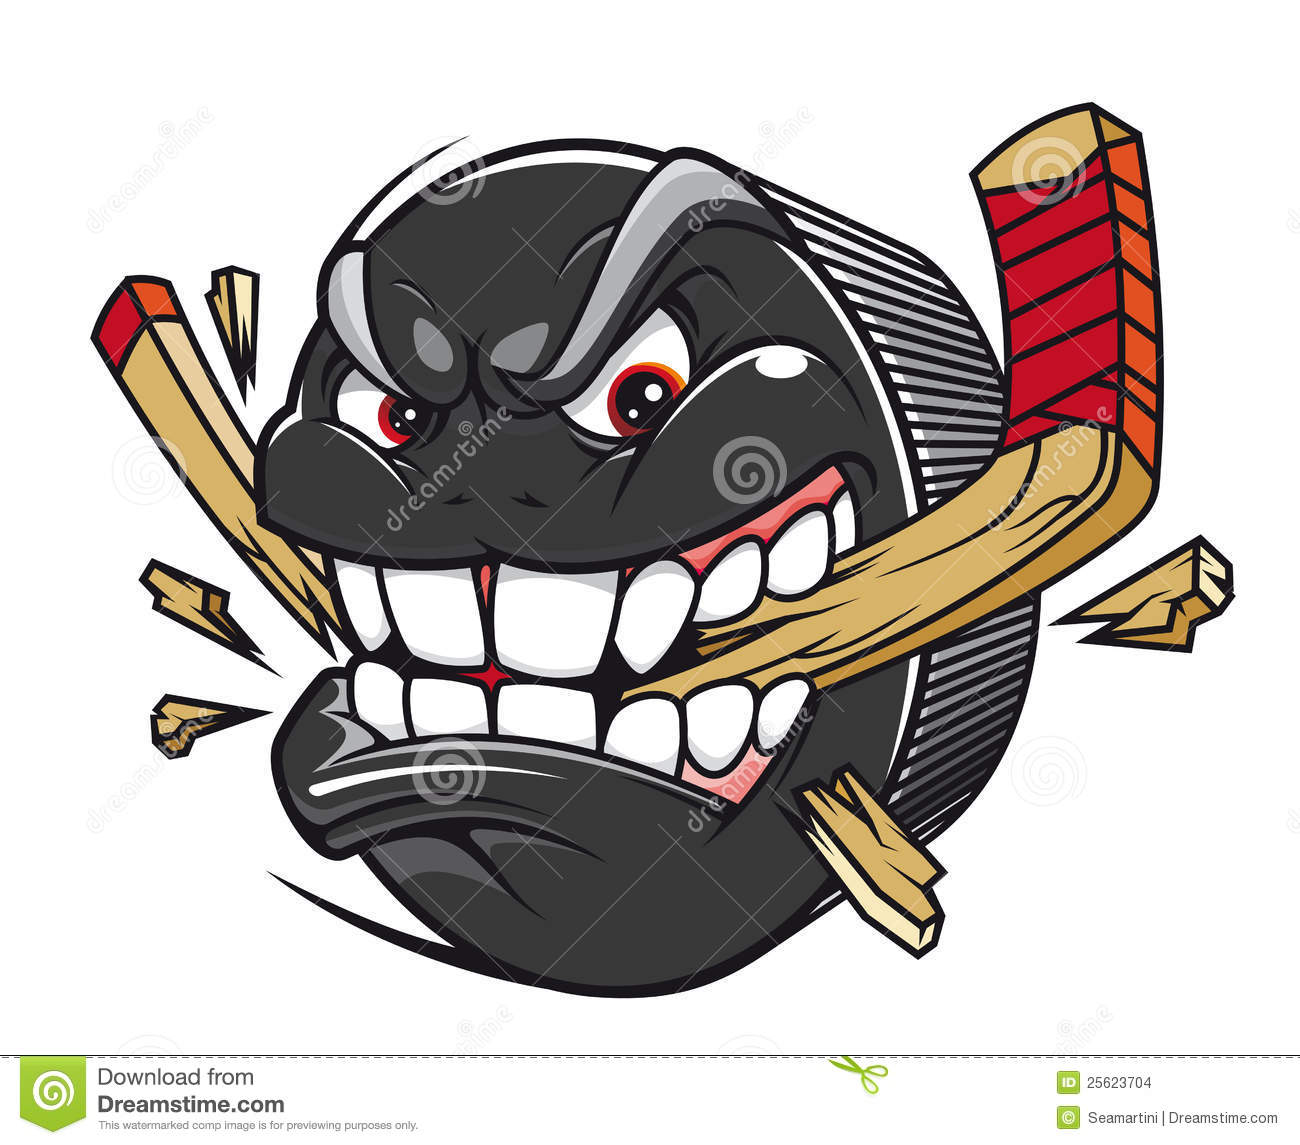 Flaming hockey puck clipart picture library stock Flaming hockey puck clipart - ClipartFest picture library stock